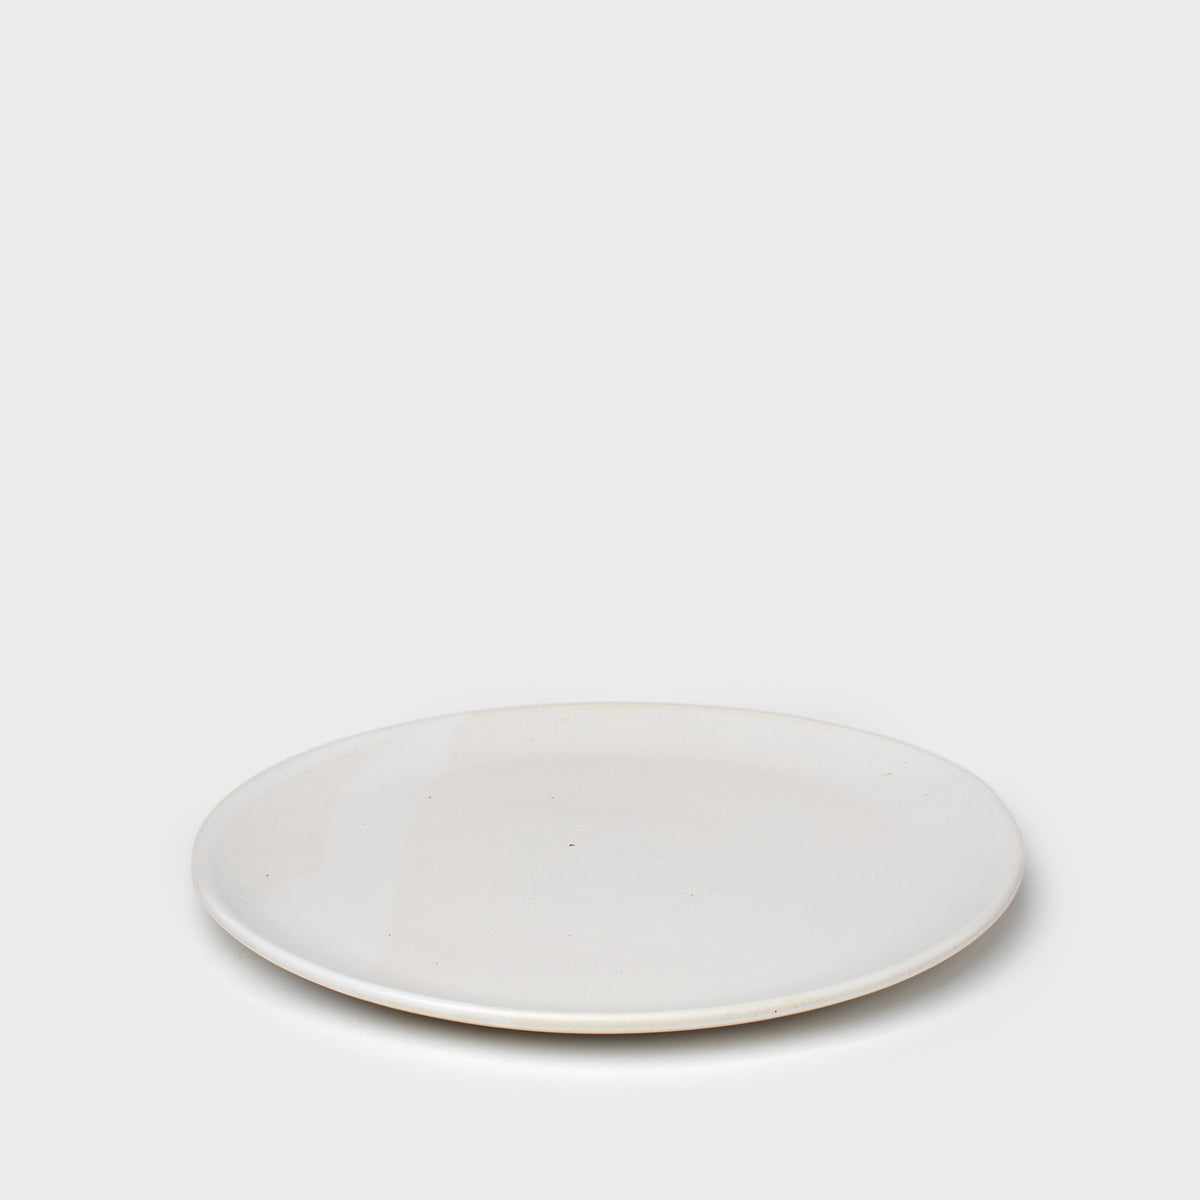 Load image into Gallery viewer, Dinner Plate in White by Meghan Flynn